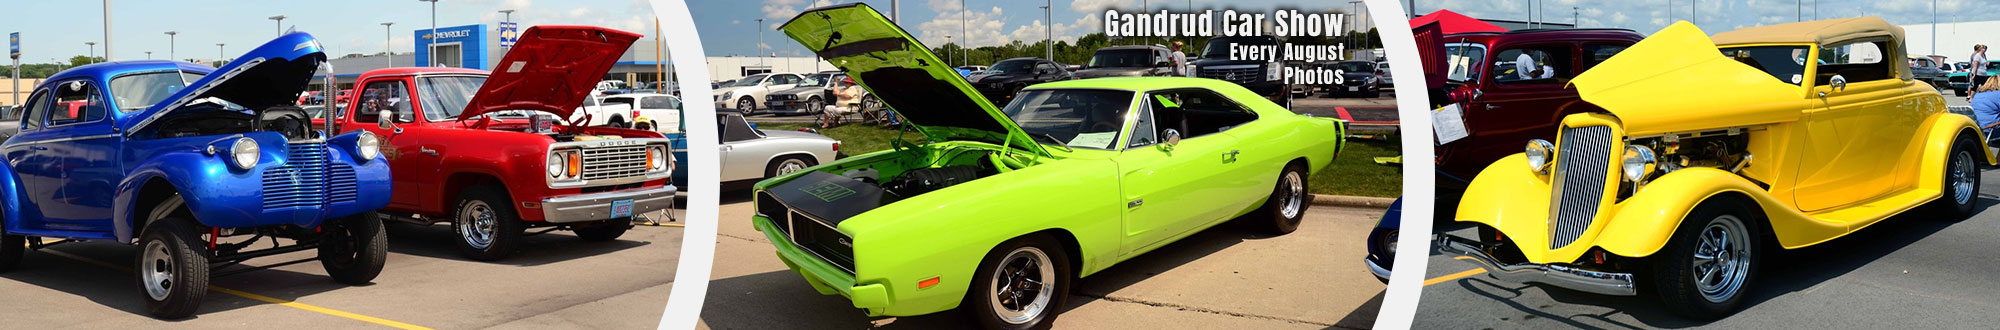 Gandrud Antique and Muscle Car Show in Green Bay, WI